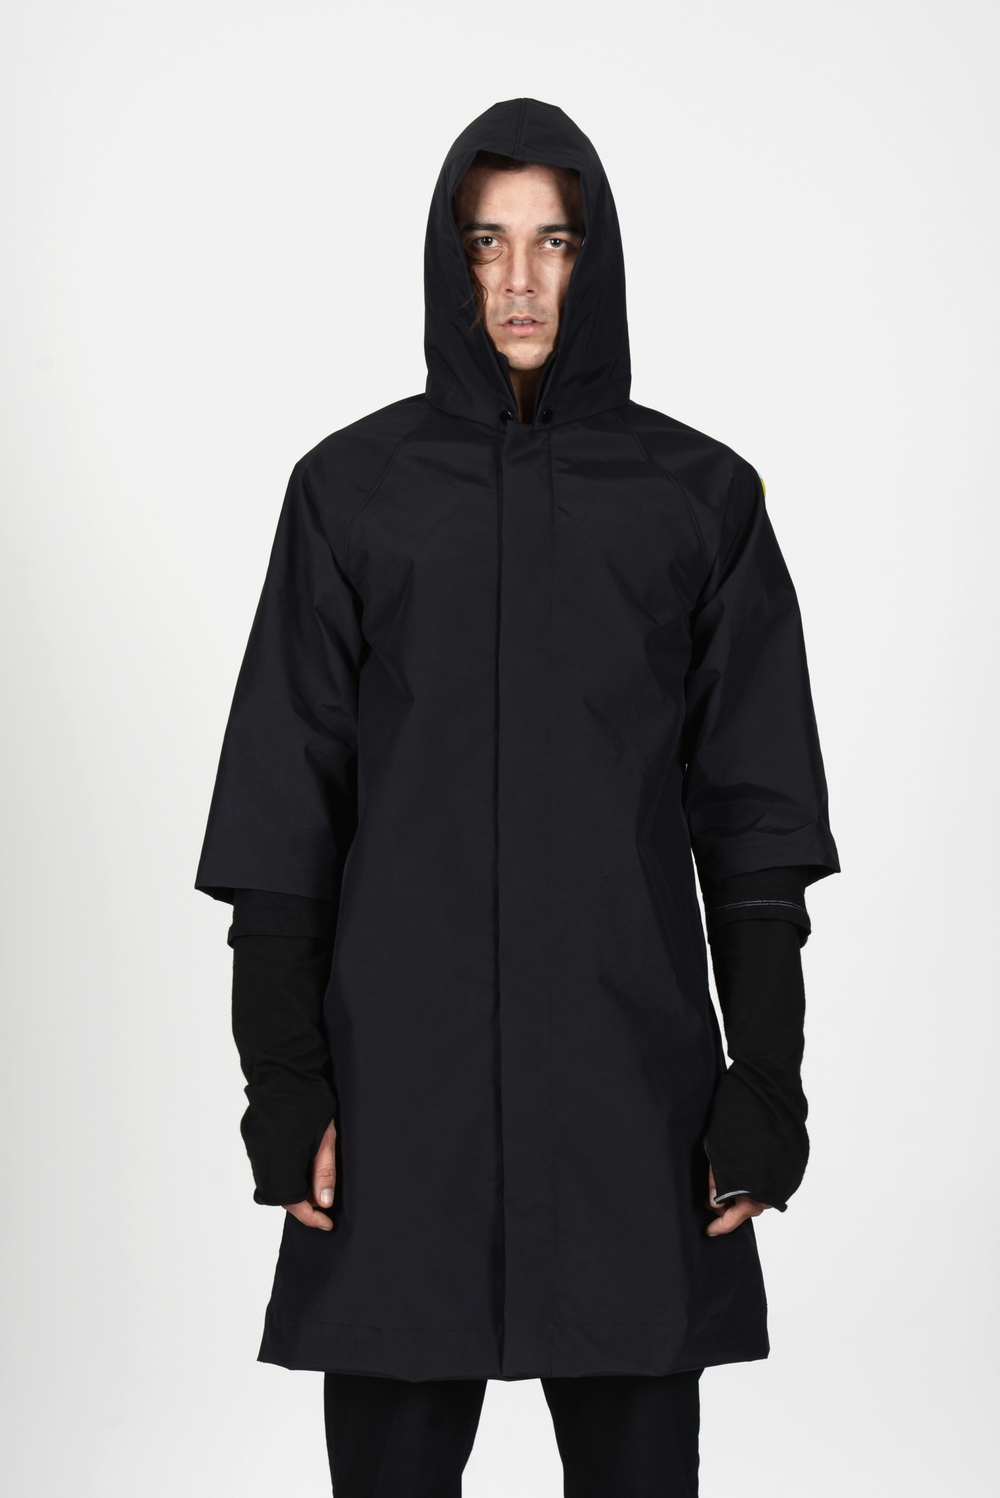 02 Heightened Sense Black Dragon Coat.jpg